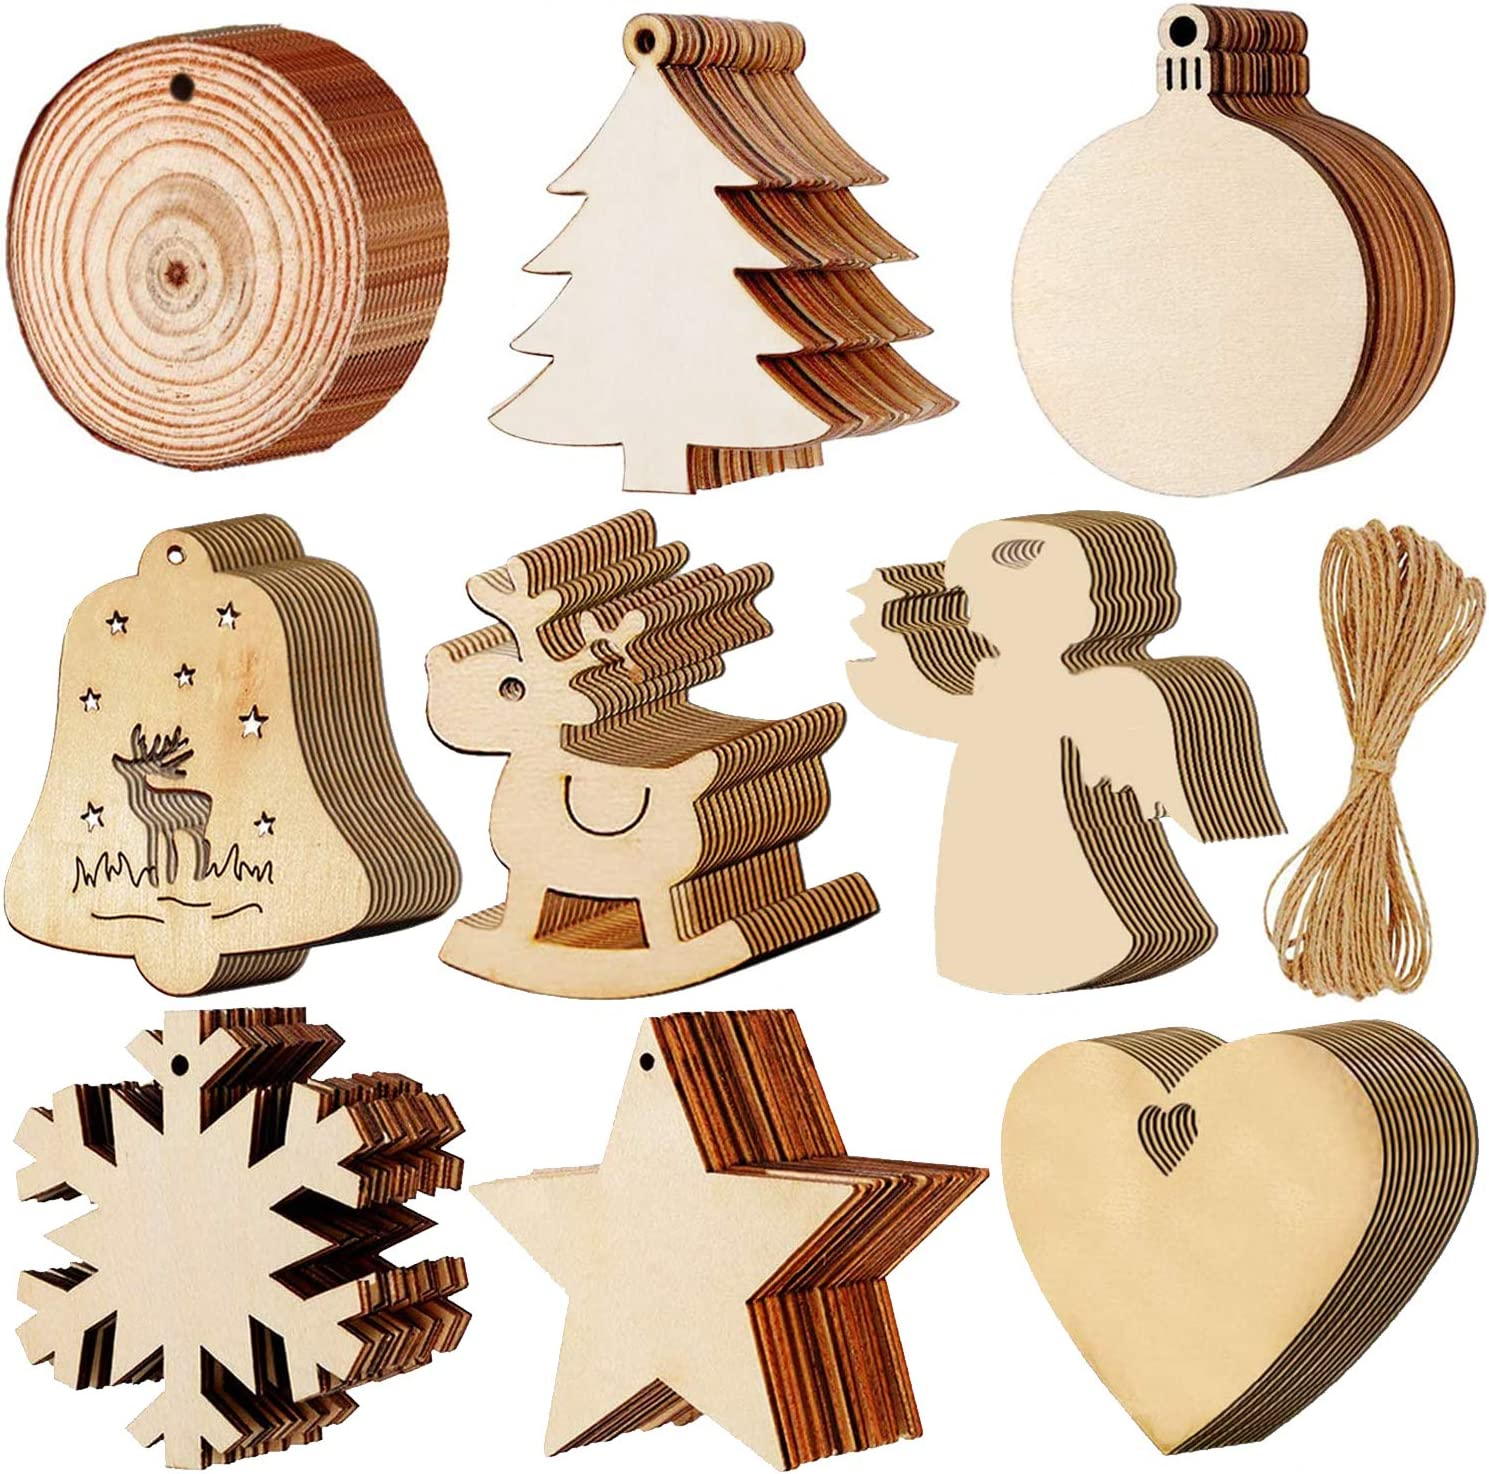 PartyYeah 90Pack Christmas Wooden Round Baubles Hemp Ropes, Wood Slices with Twines, 3.15inch Xmas Ornaments Ideal for Christmas Tree Hanging Decor& Art Crafts DIY Gift